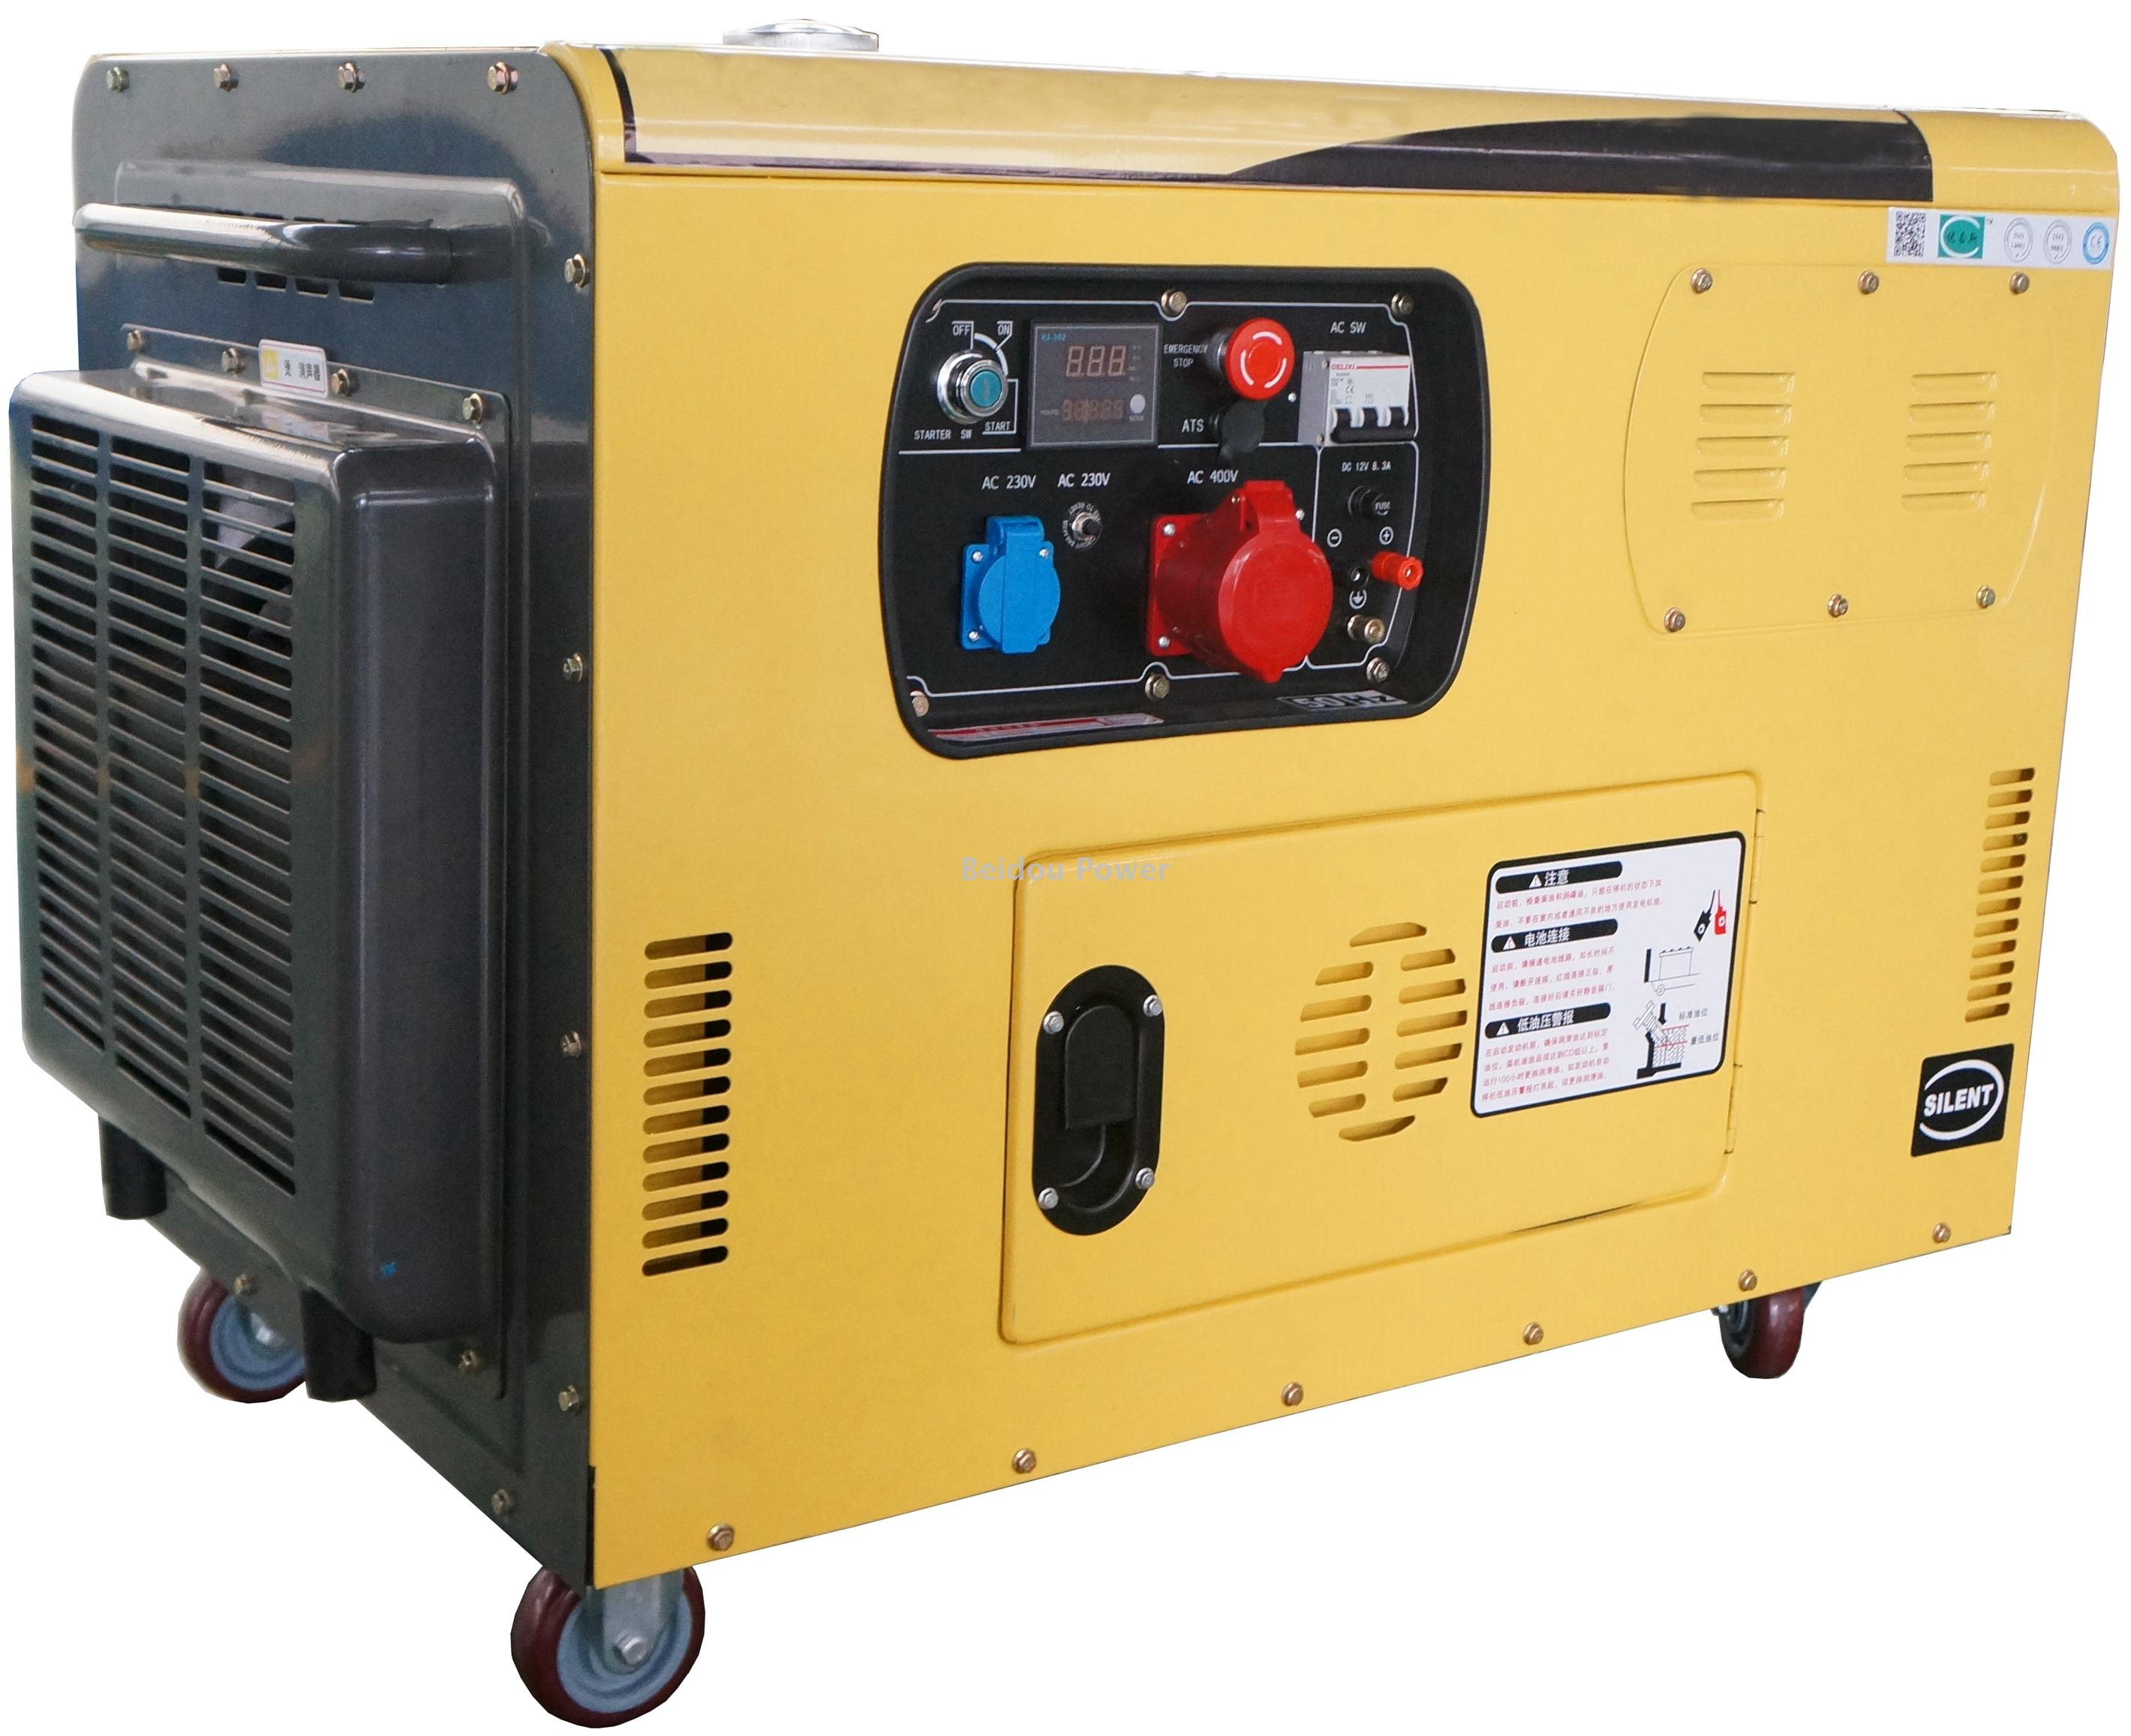 9kw 1125kva Silent Diesel Genset With Four Wheels Model BD 12000ES Rated Power Voltage 230 400V Frequency 50 60Hz